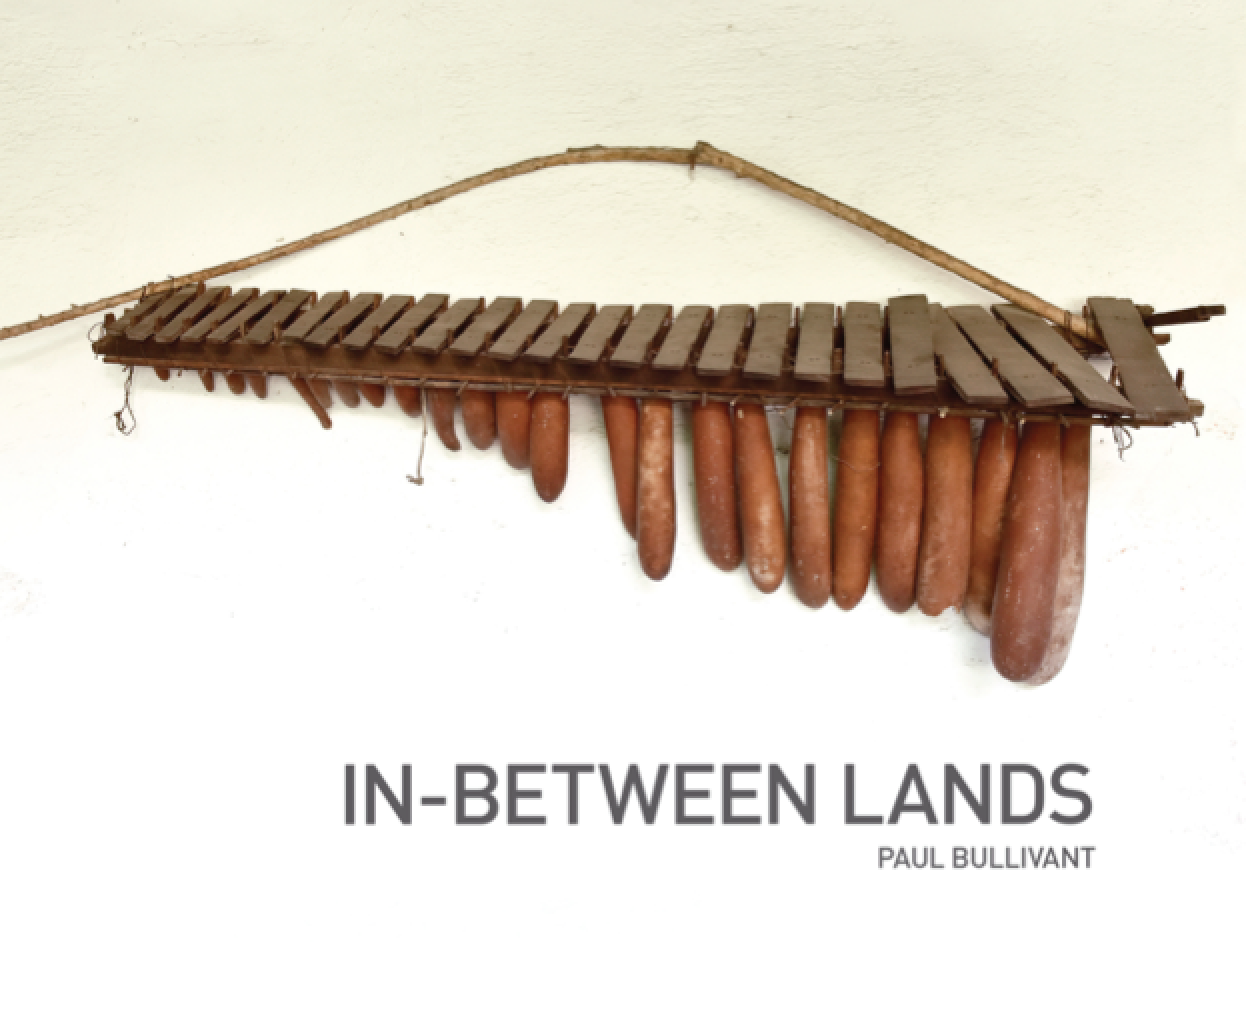 In-Between Lands